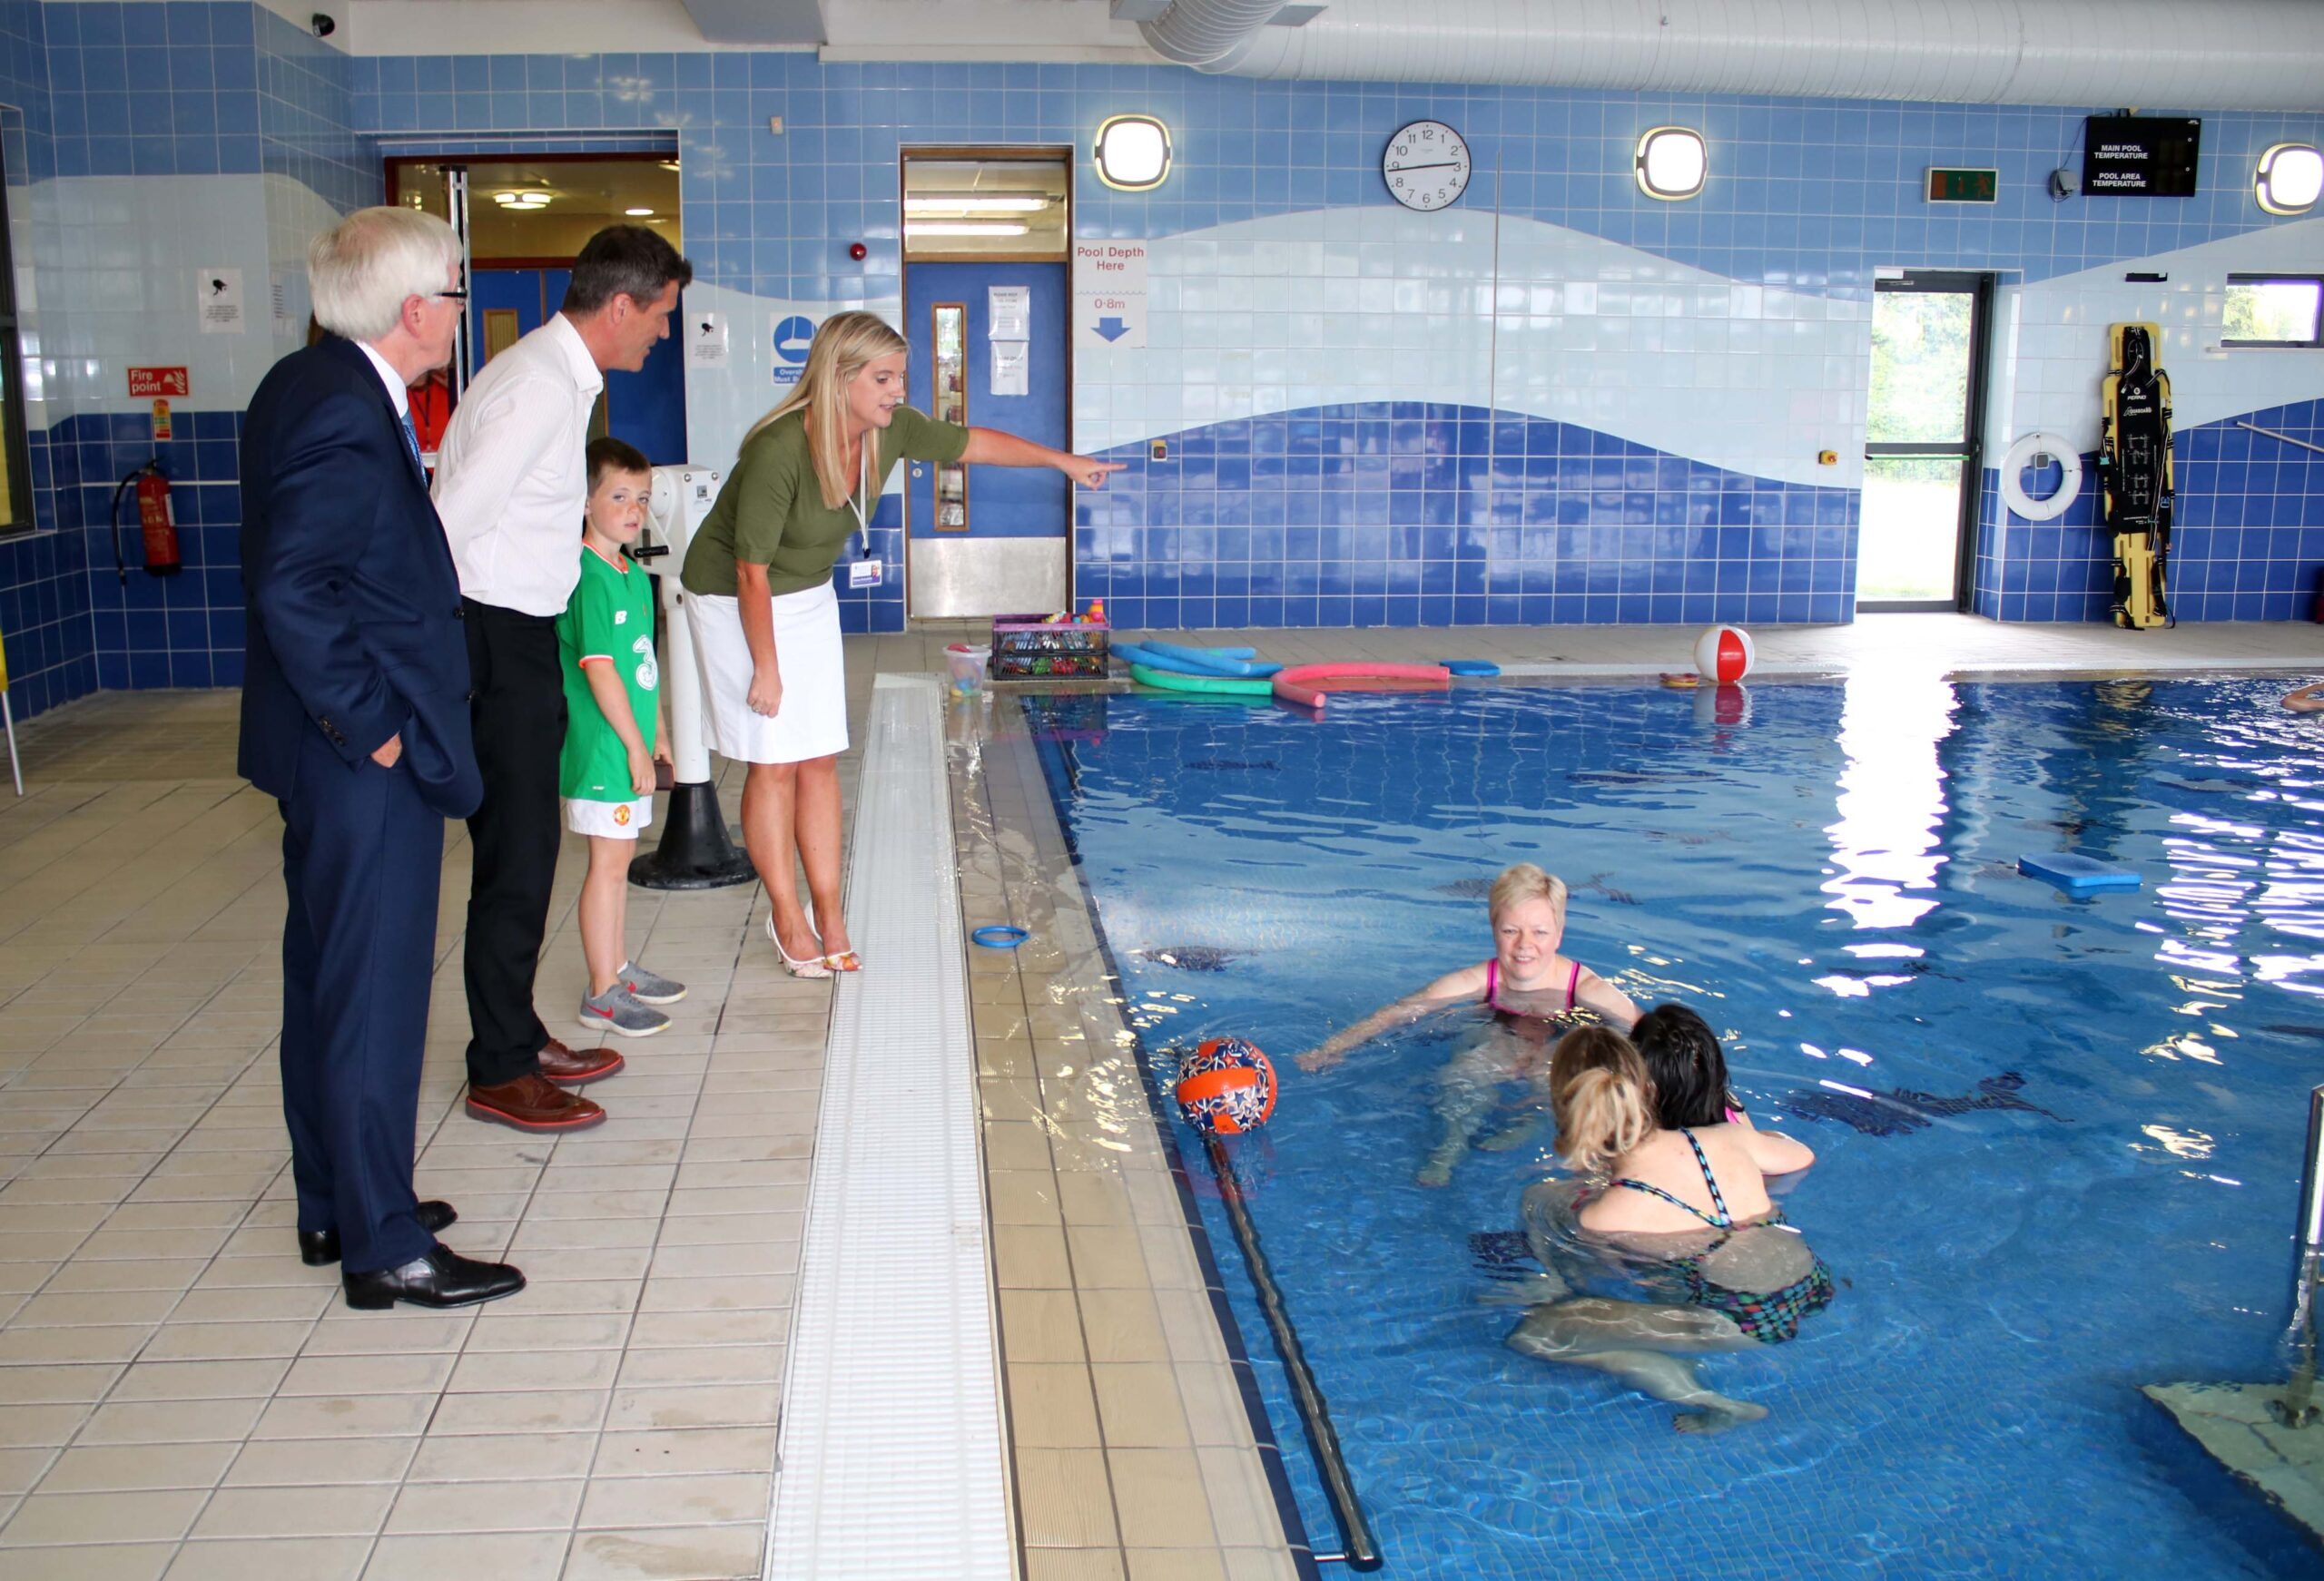 In 2009 St Gabriels opened a new Hydrotherapy Pool, largely in thanks to the philanthropic efforts of JP McManus and the fundraising efforts of the community in Limerick.